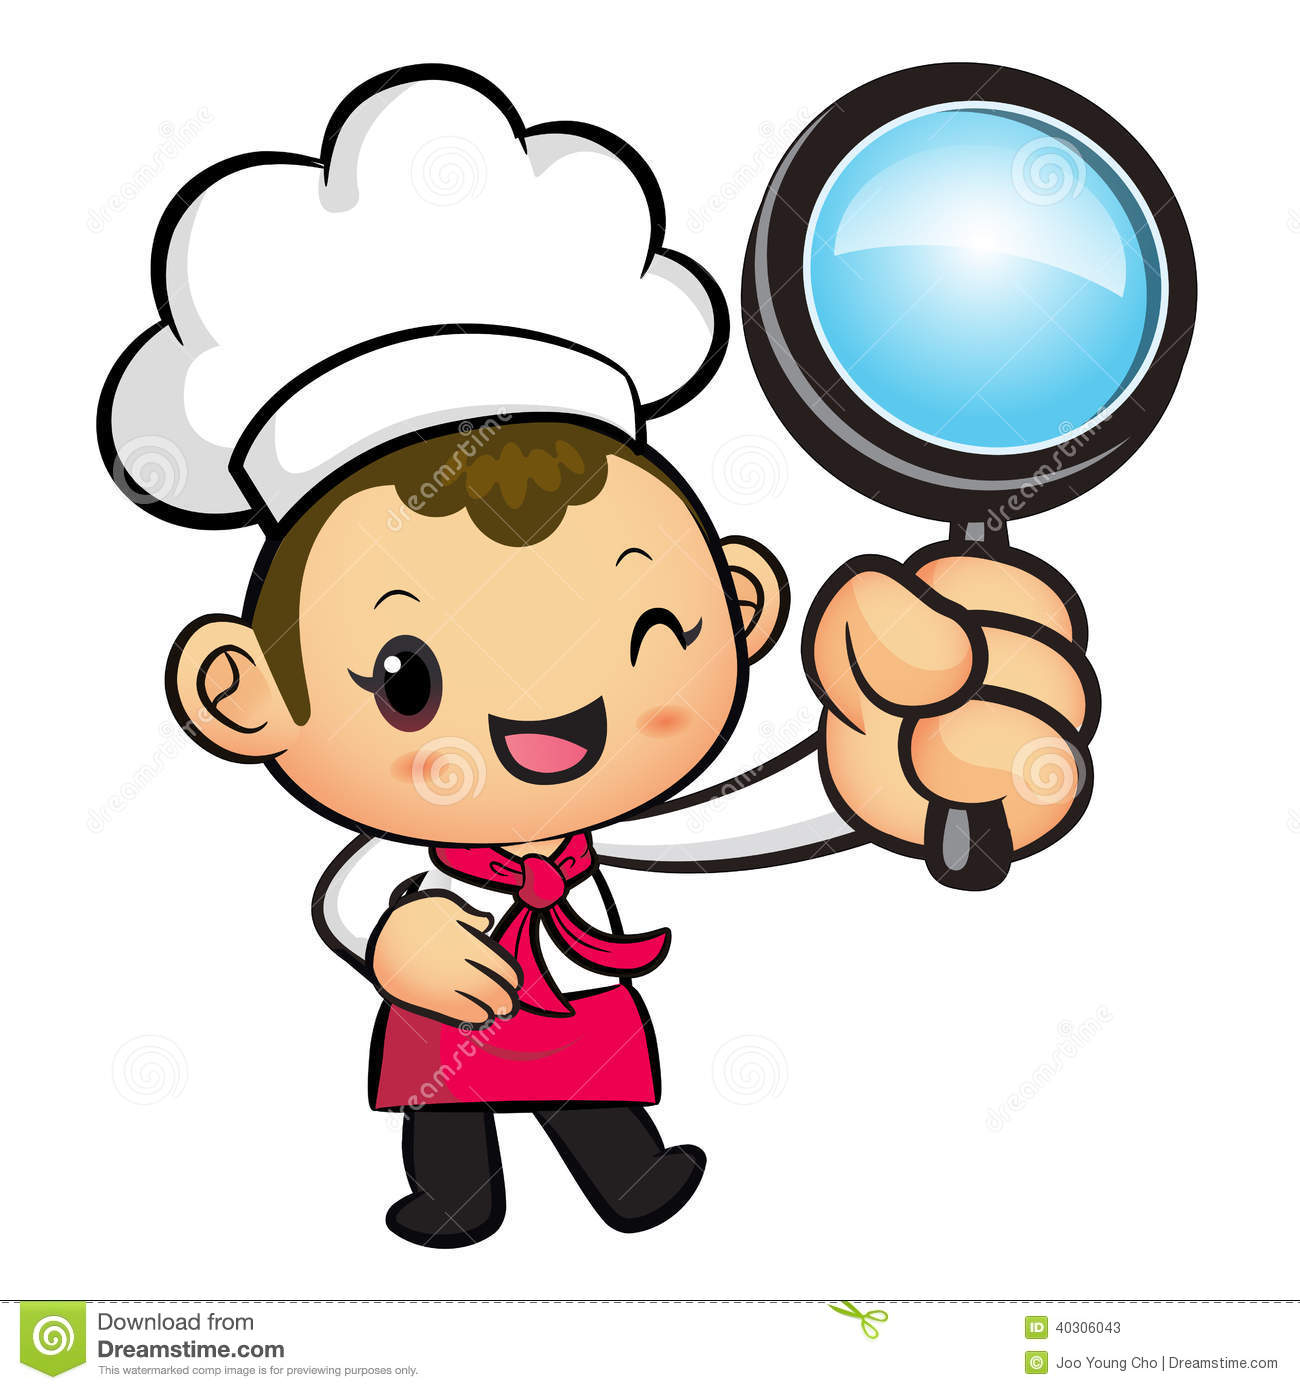 Character Design Careers : Chef mascot examine a with magnifying glass work and